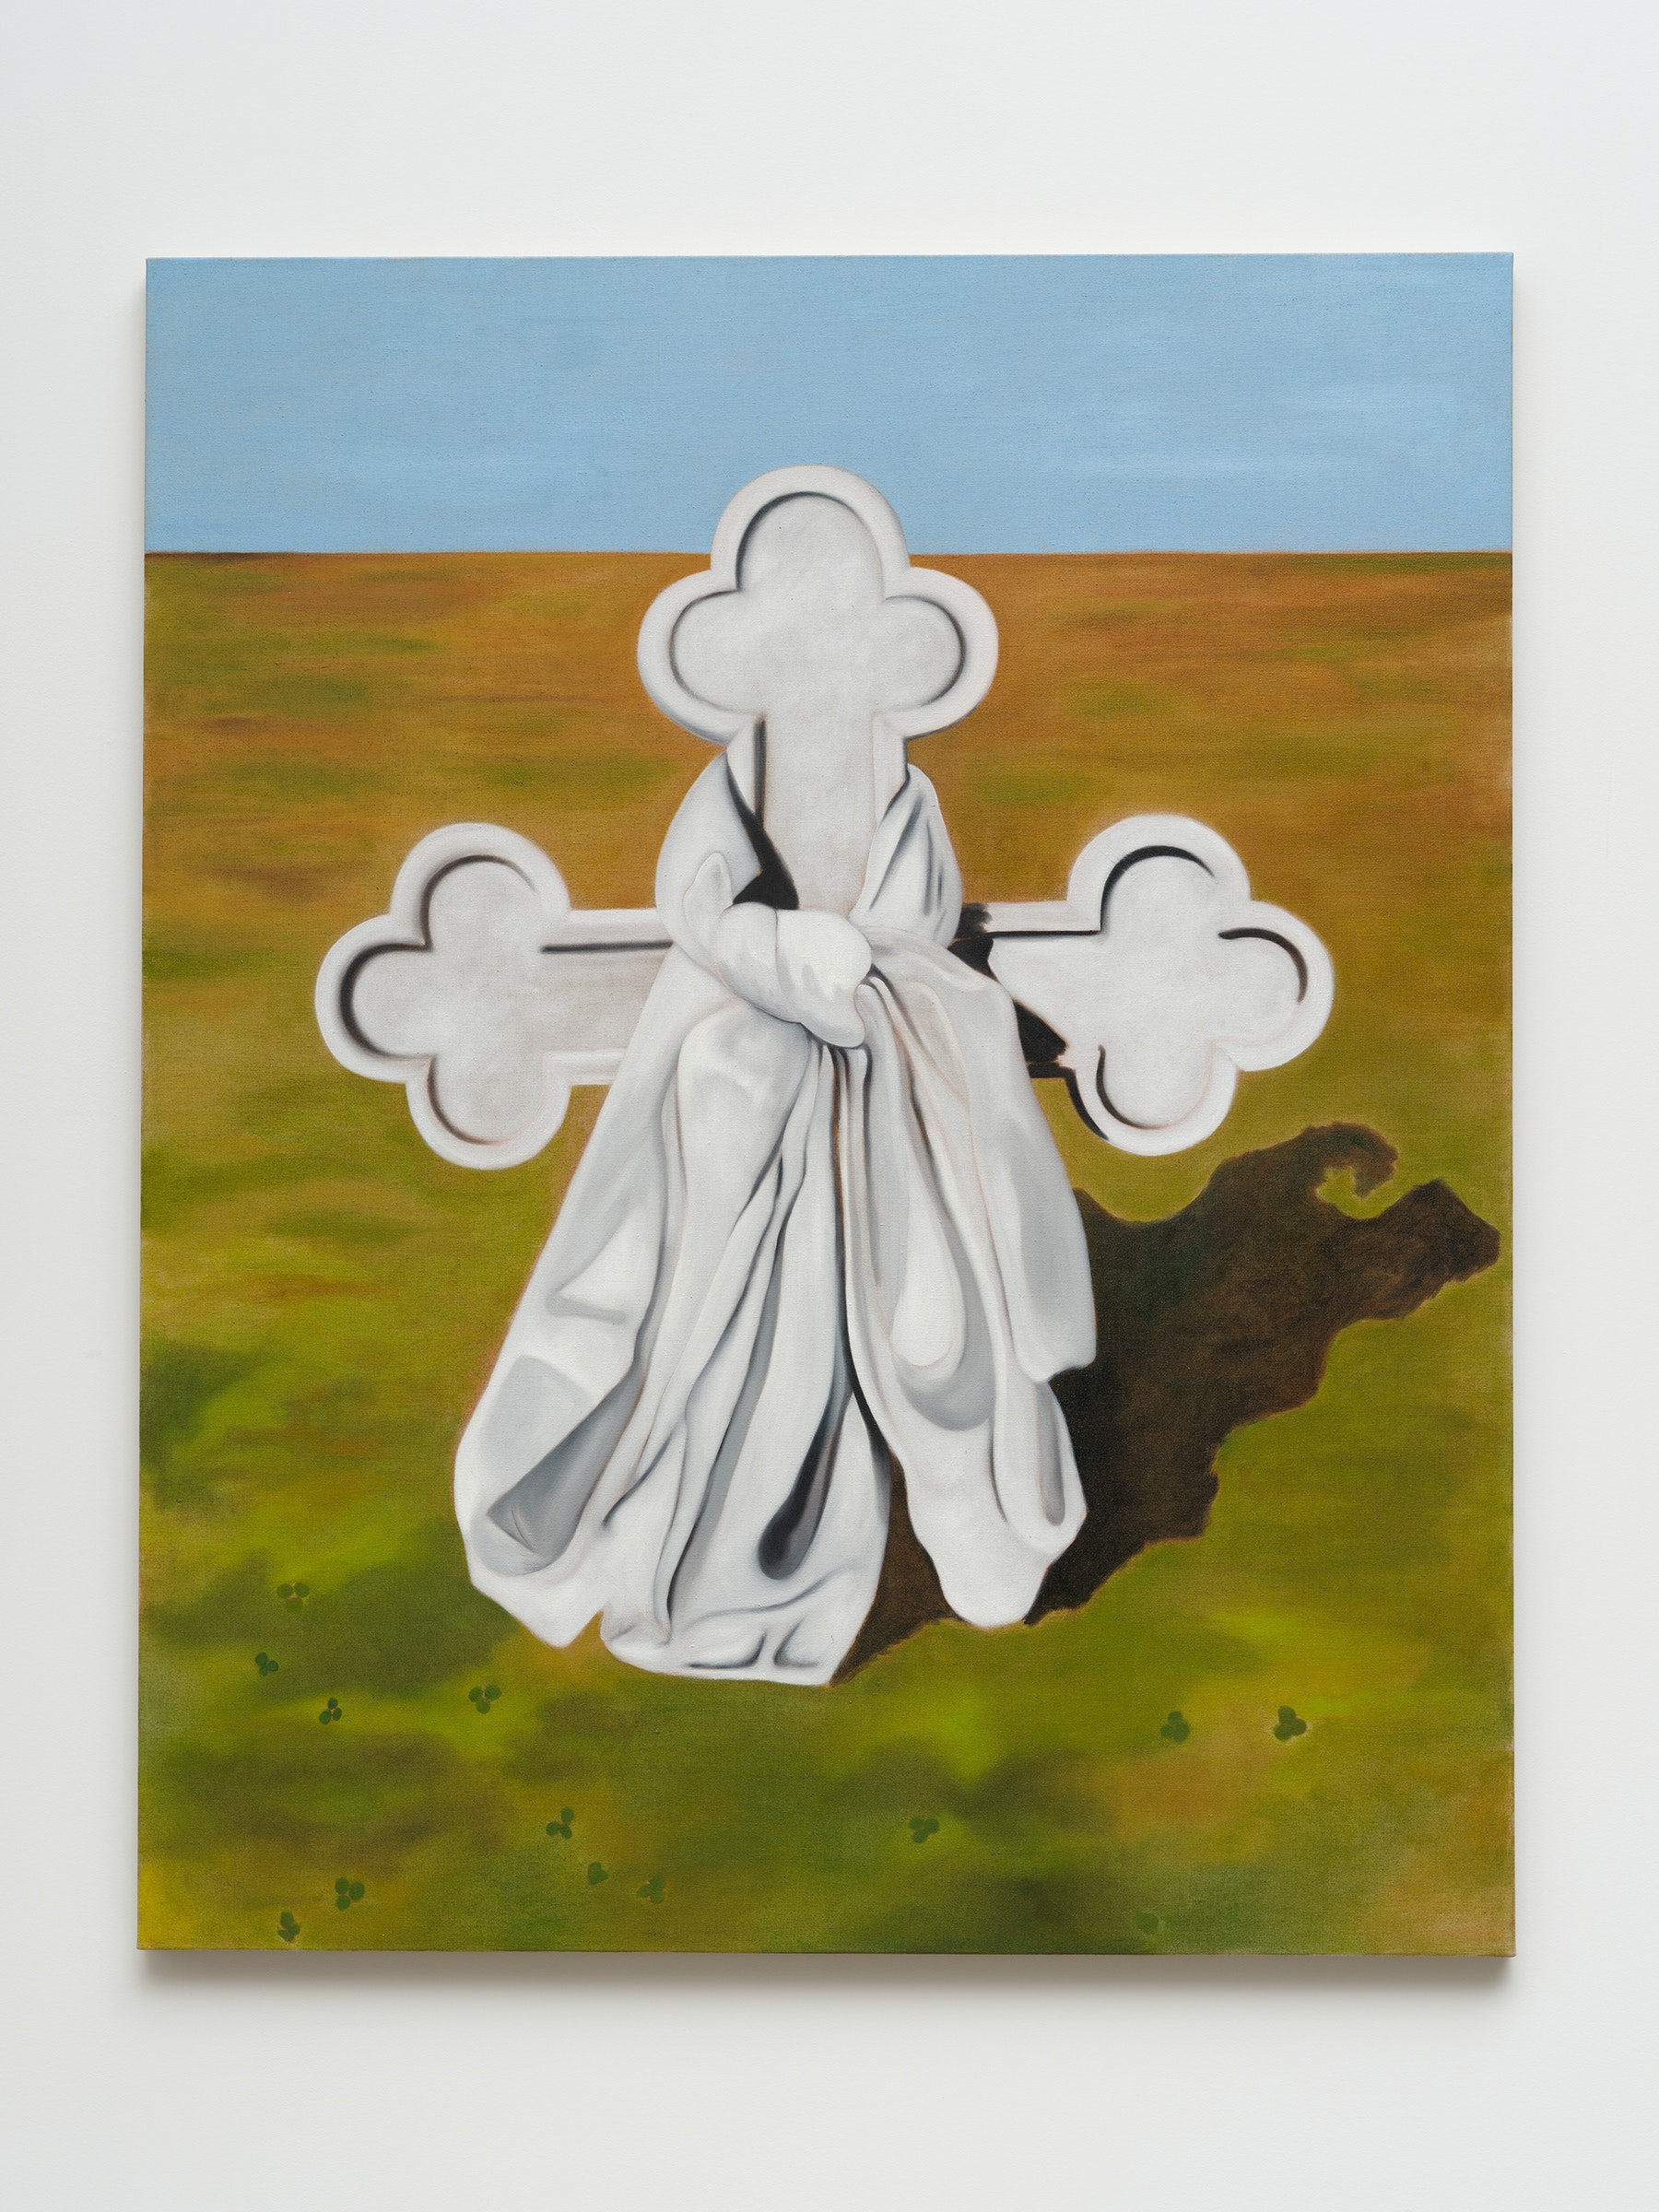 """Math Bass """"Thomas Merton's grave,"""" 2021 Oil on linen 52 x 42 x 1.25"""" [HxWxD] (132.08 x 106.68 x 3.18 cm) Inventory #BAS1036 Courtesy of the artist and Vielmetter Los Angeles Photo credit: Jeff Mclane Collection of Minneapolis Institute of Art; Minneapolis, MN, USA"""